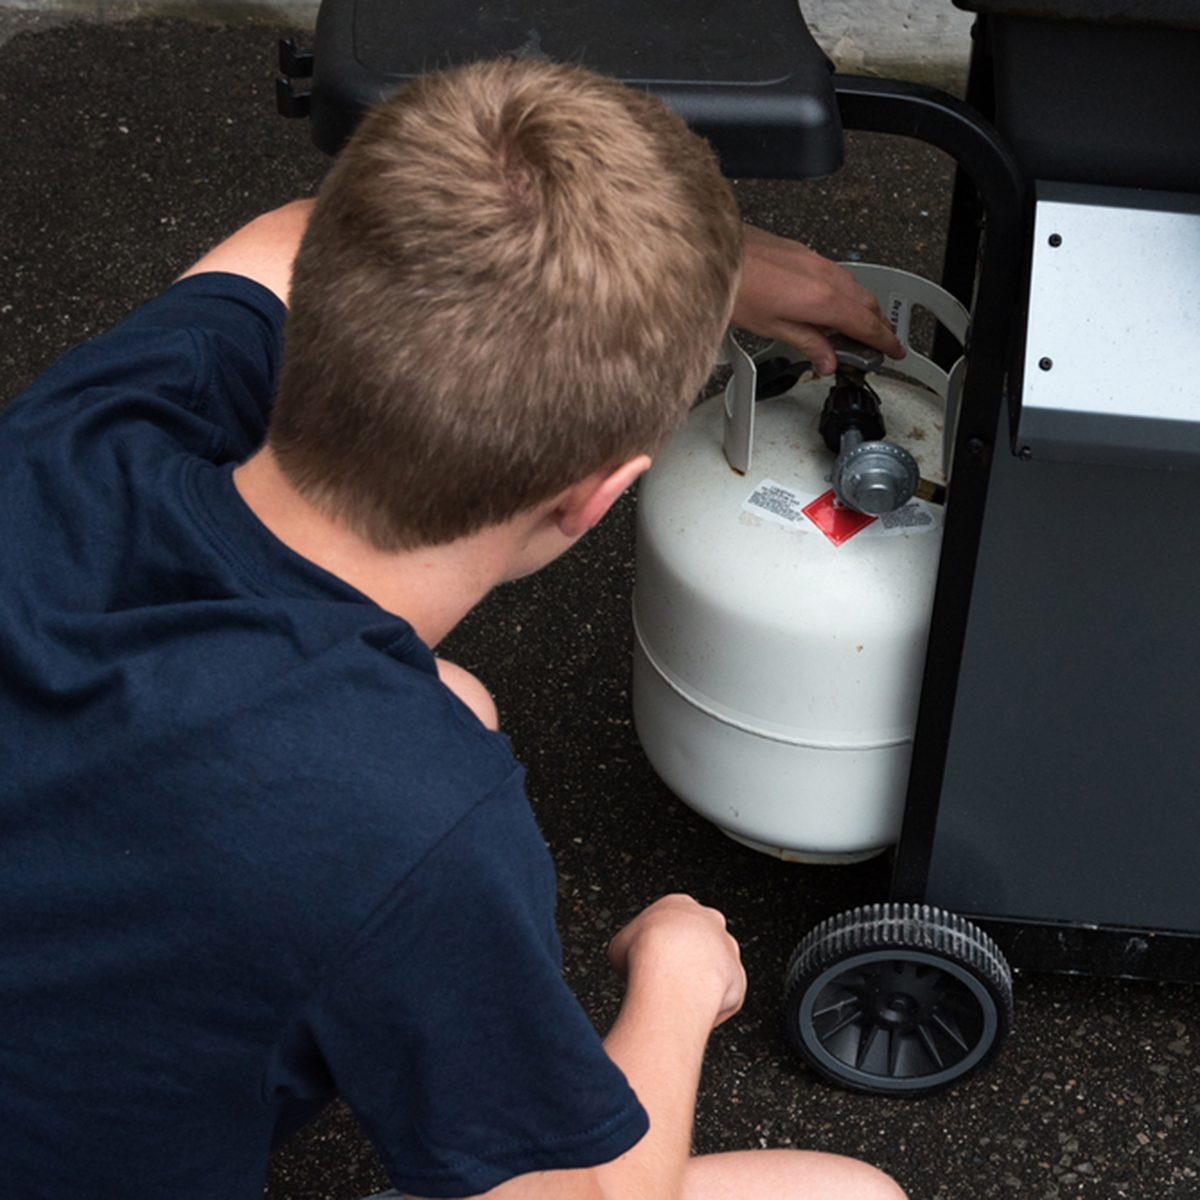 Teenager opening a propane tank for a barbecue